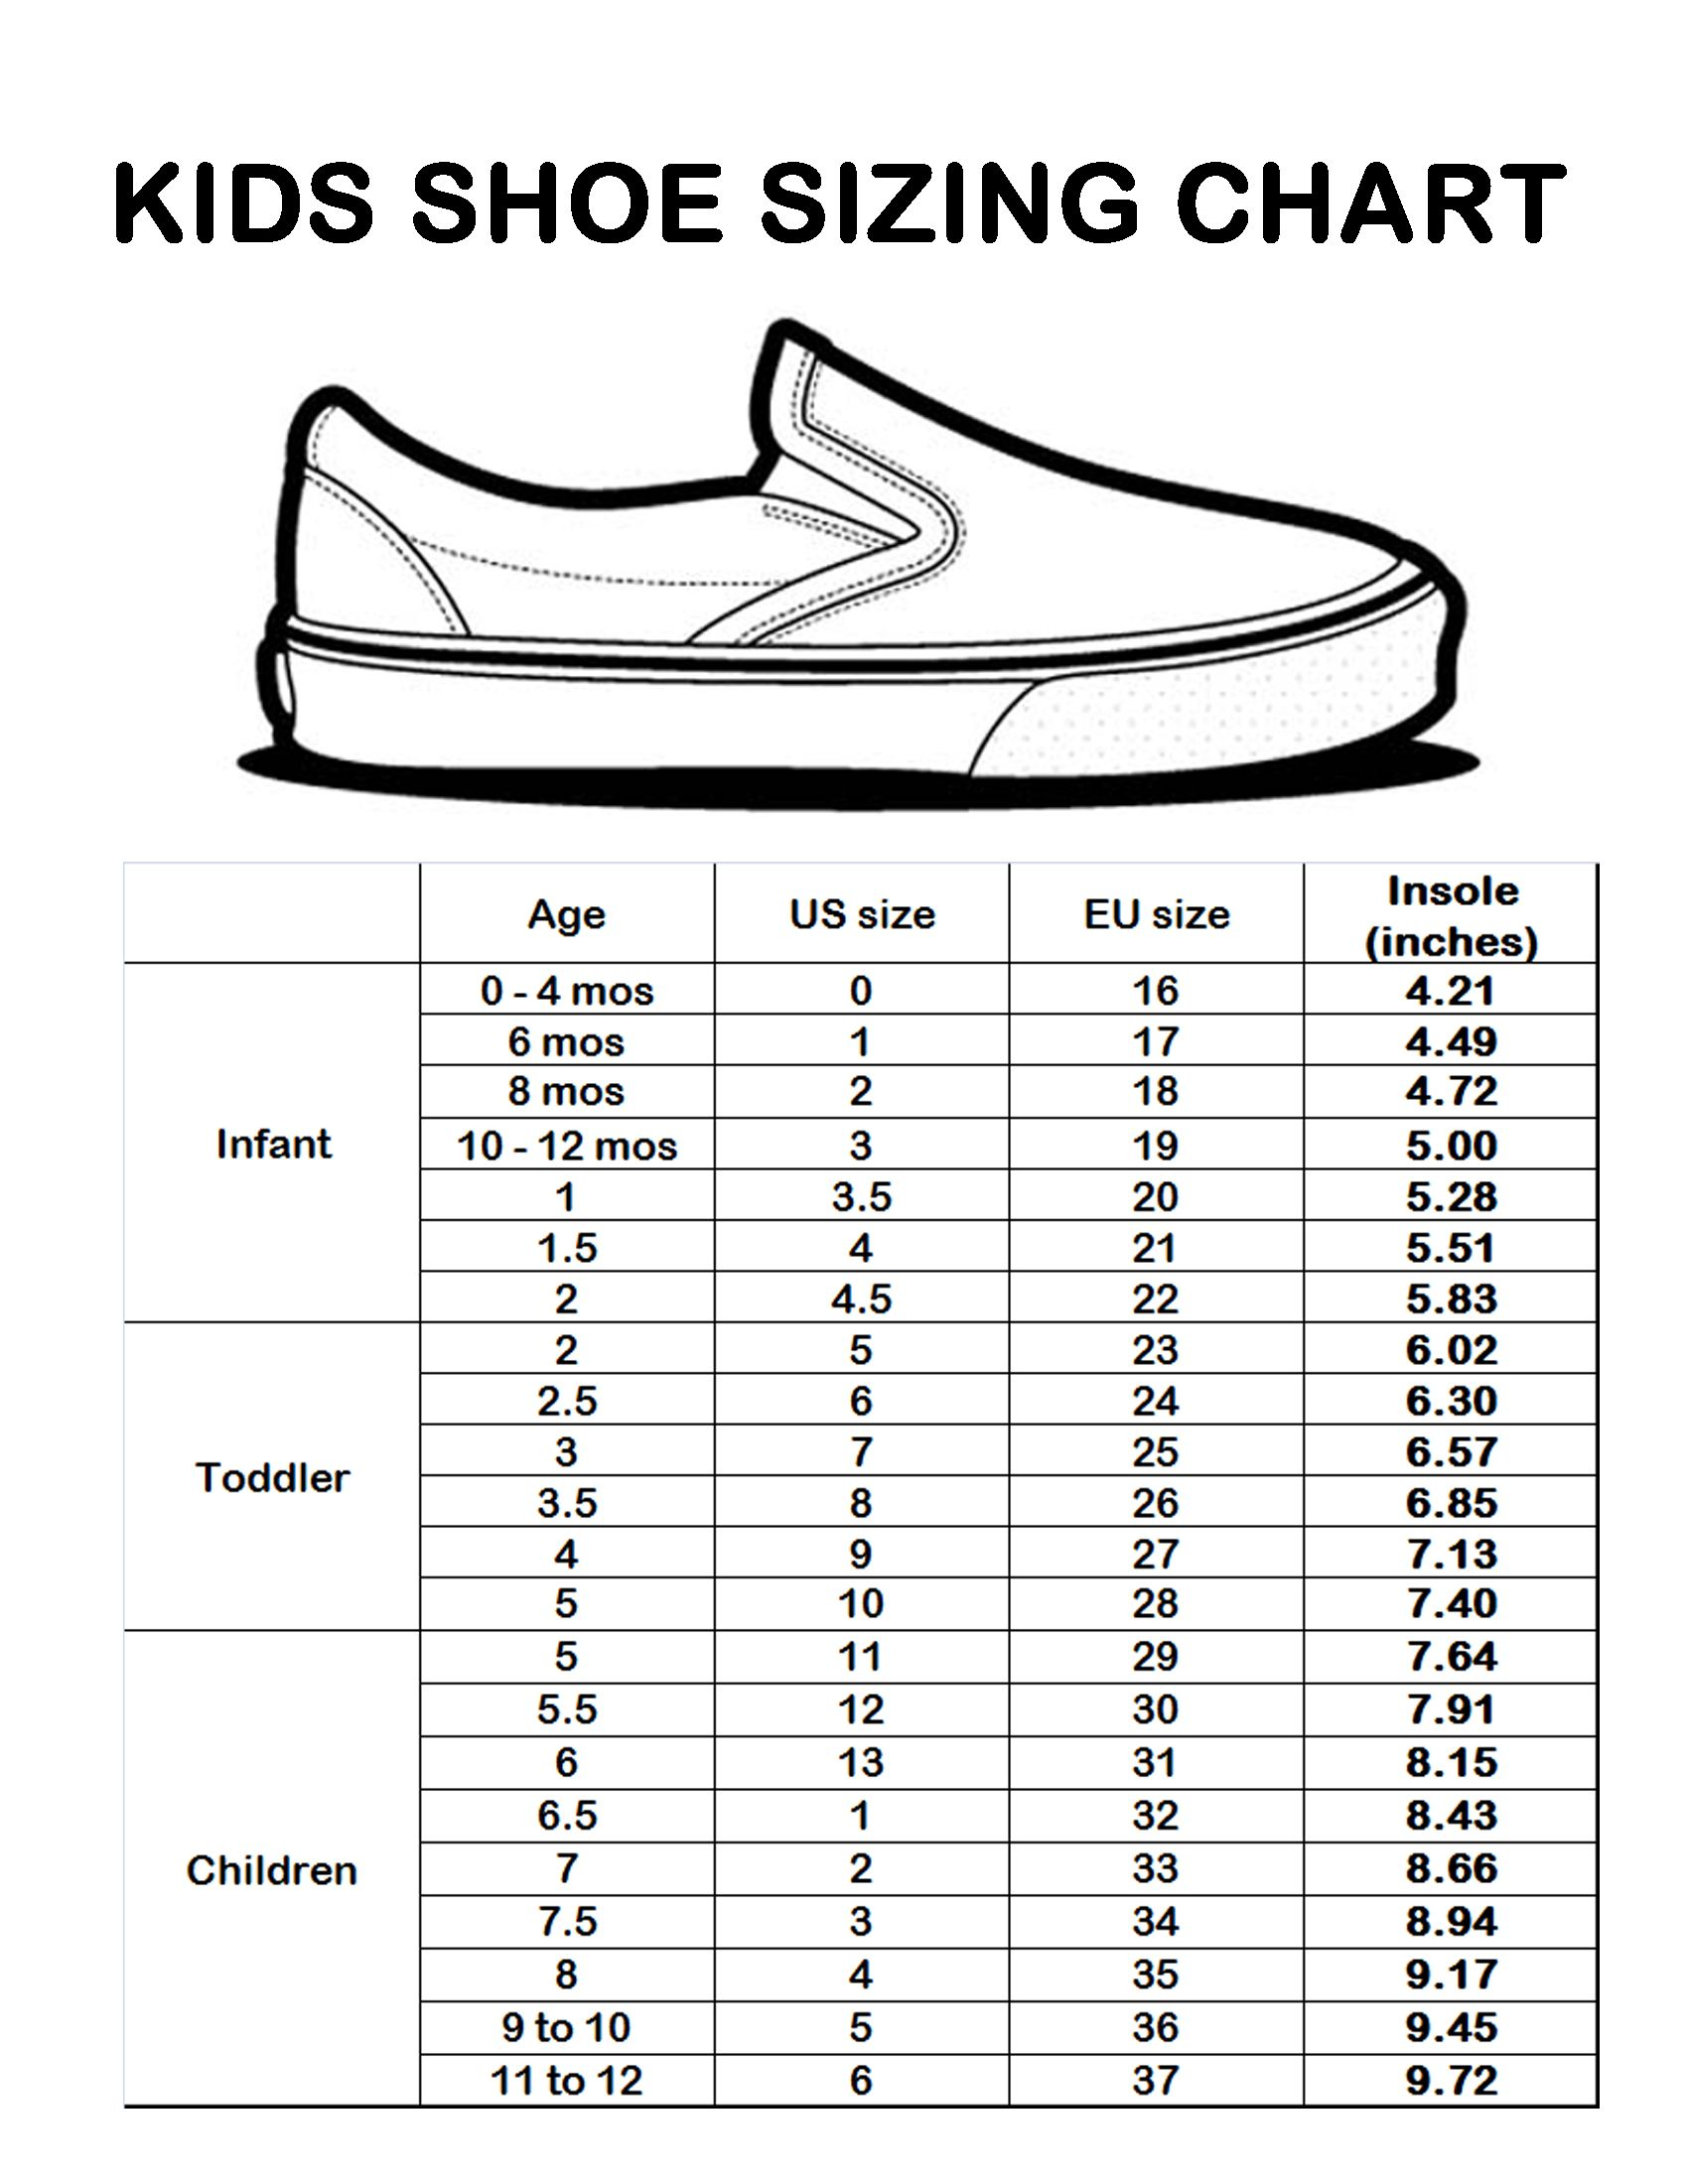 Converse Size Conversion Guide – From UK, EUR, CM, USA April 15, Mustafa Dawoodbhoy 2 Comments This article hopes to help you convert your Converse shoe size between the many different measurements used for shoes.